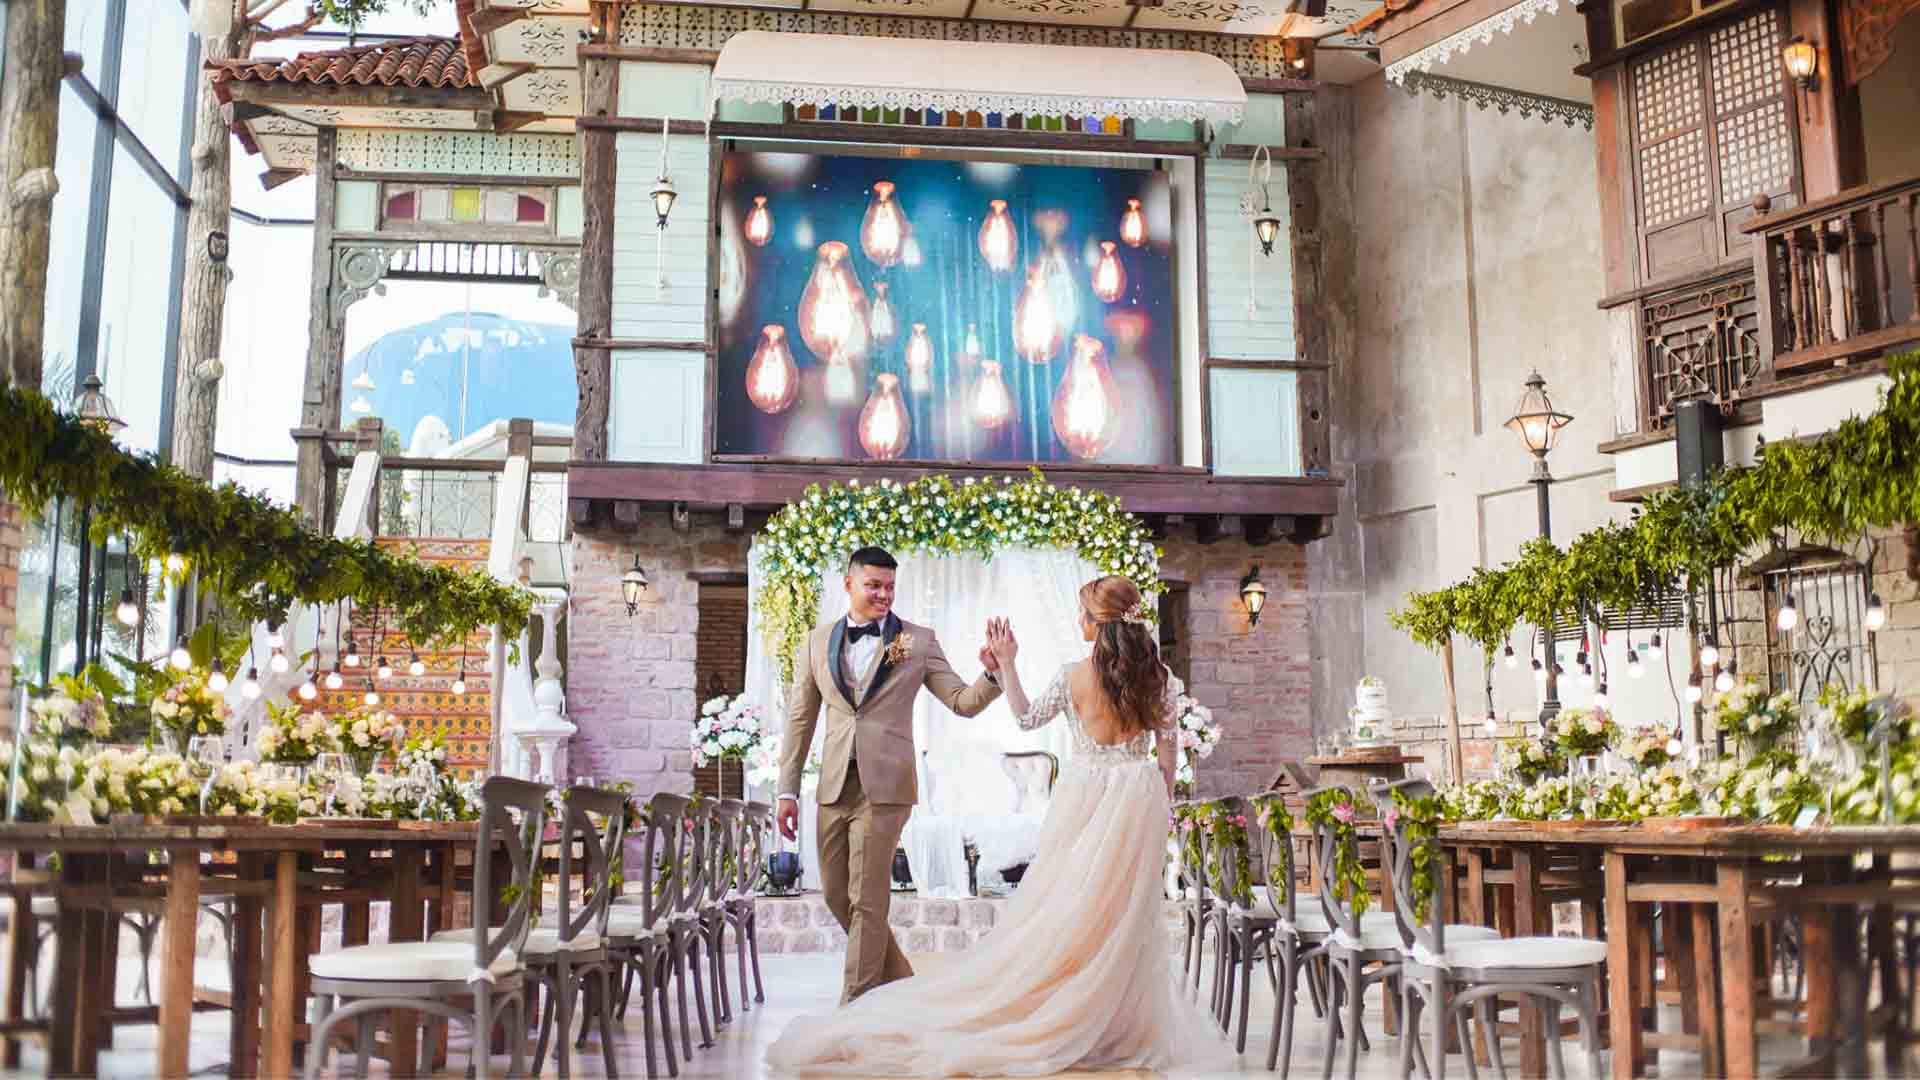 Town's Delight Catering & Events Filipinana Wedding Guide Philippines